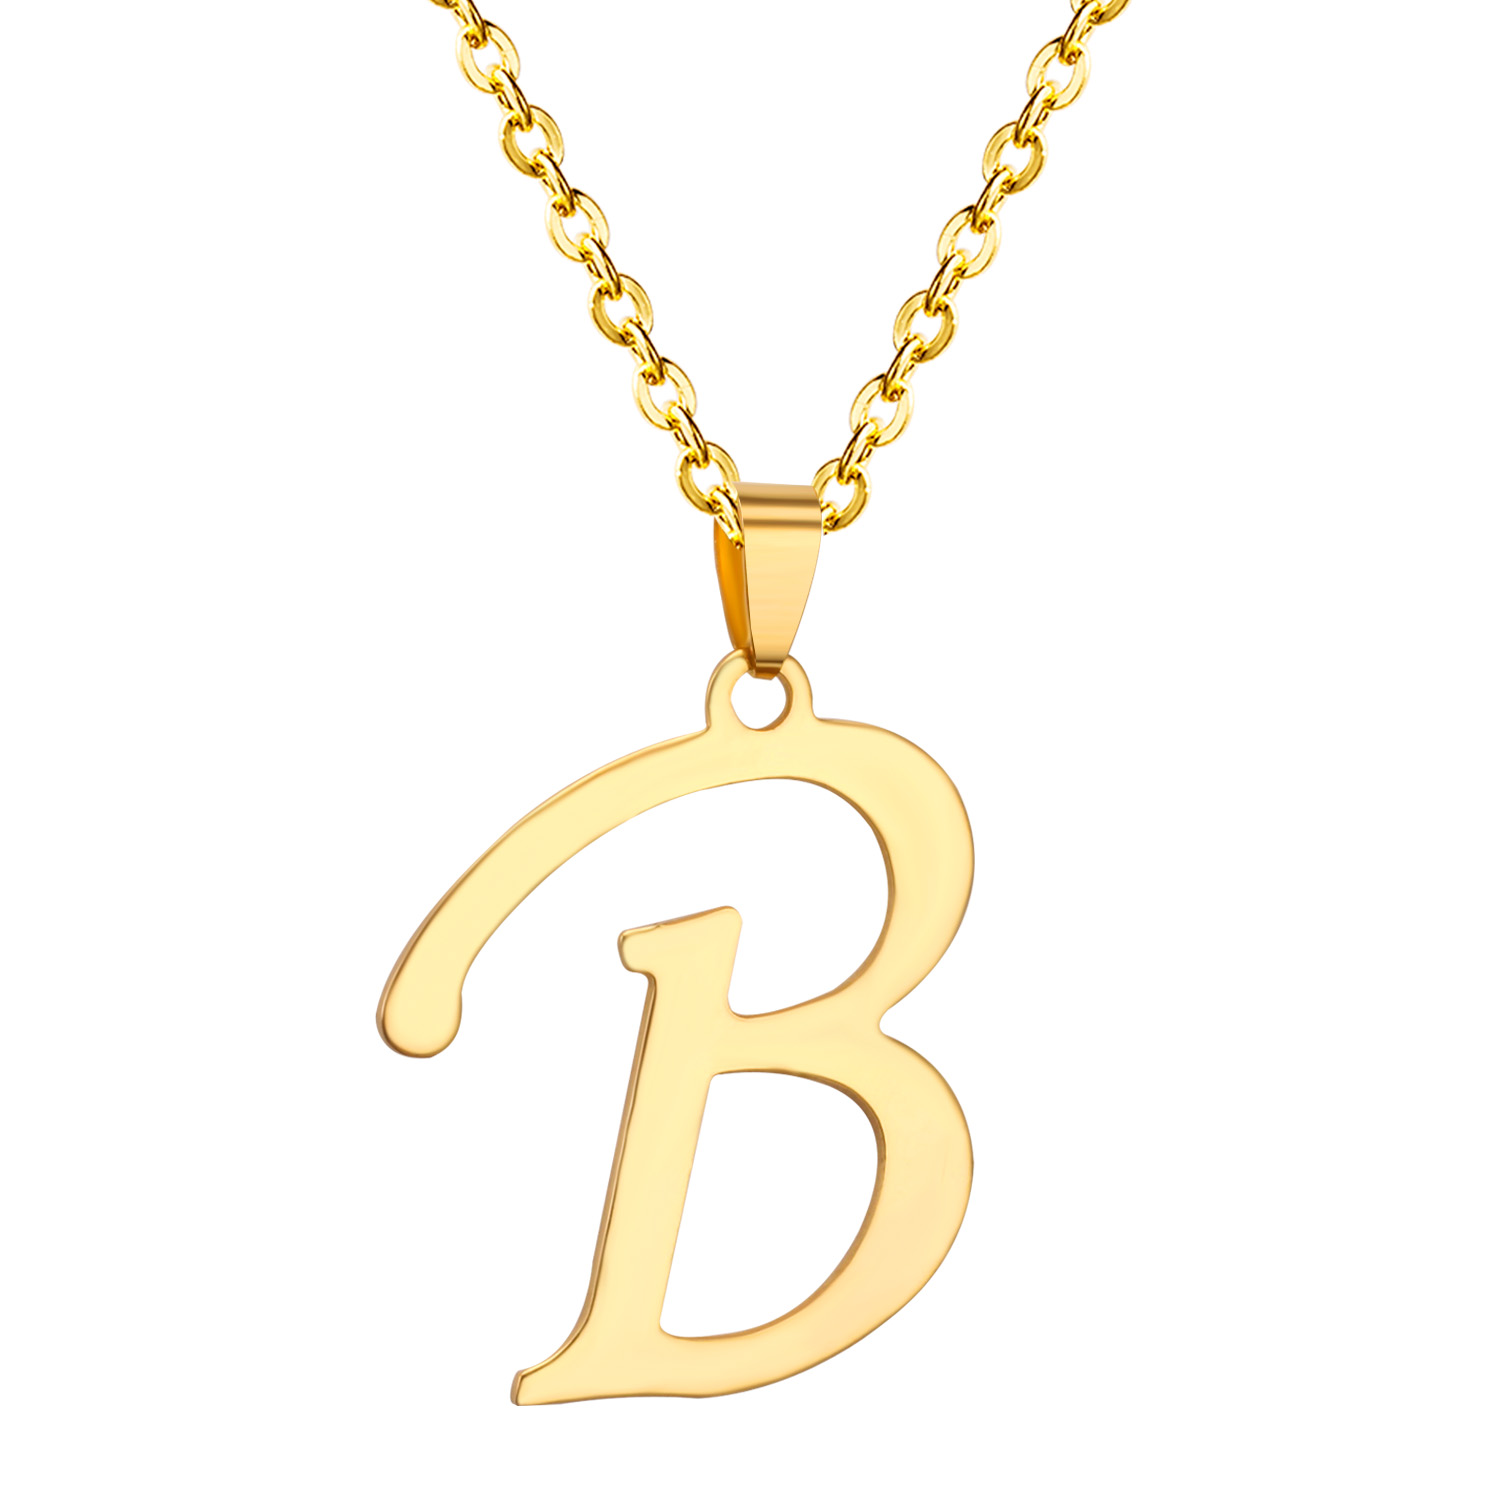 The Name Pendant Word Is B 316L Stainless Steel Pendants Necklaces,Free Chain(China